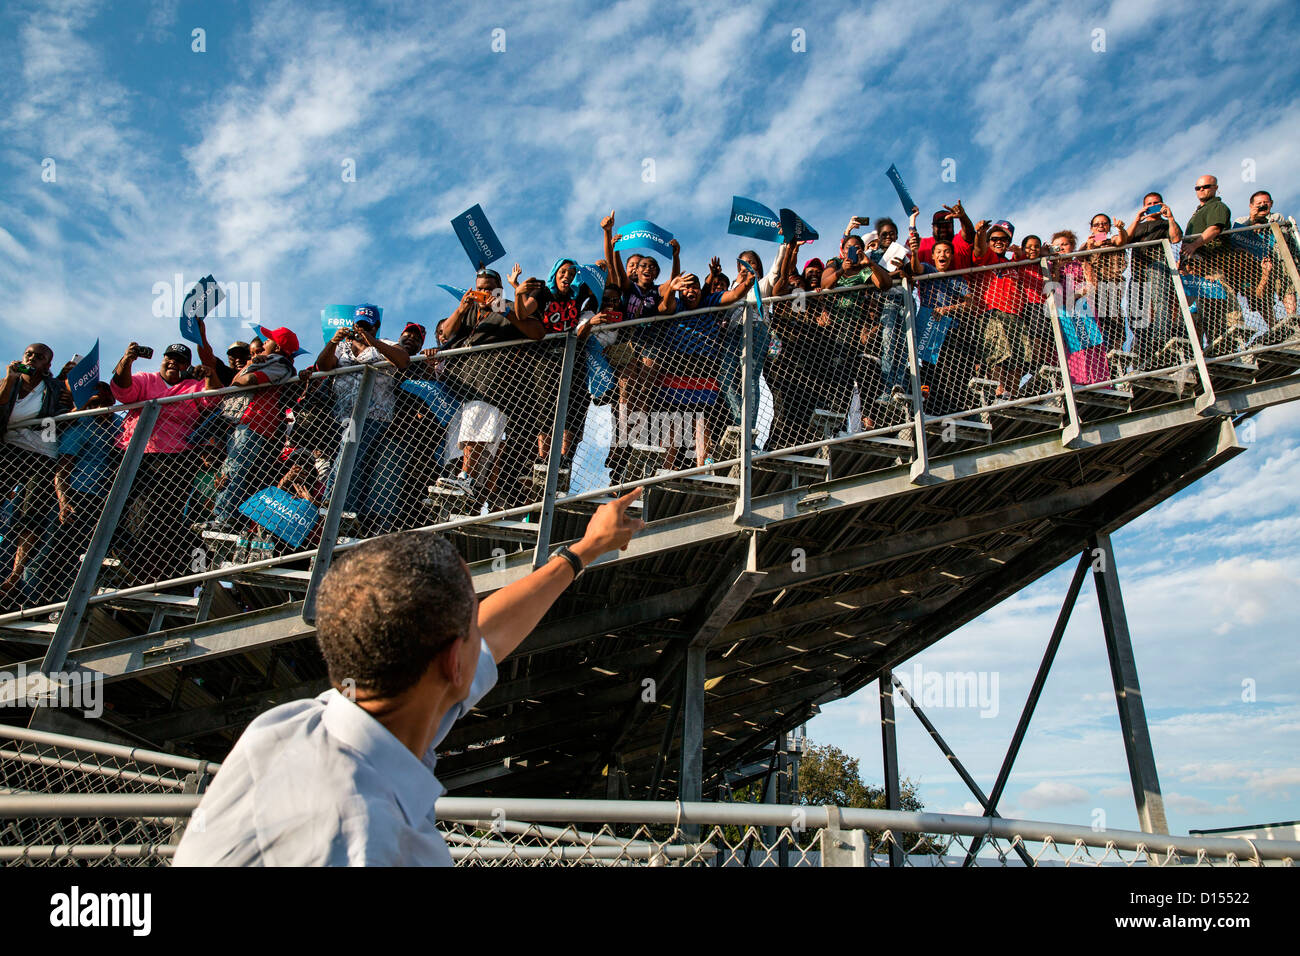 US President Barack Obama acknowledges the crowd during a campaign event at McArthur High School November 4, 2012 - Stock Image